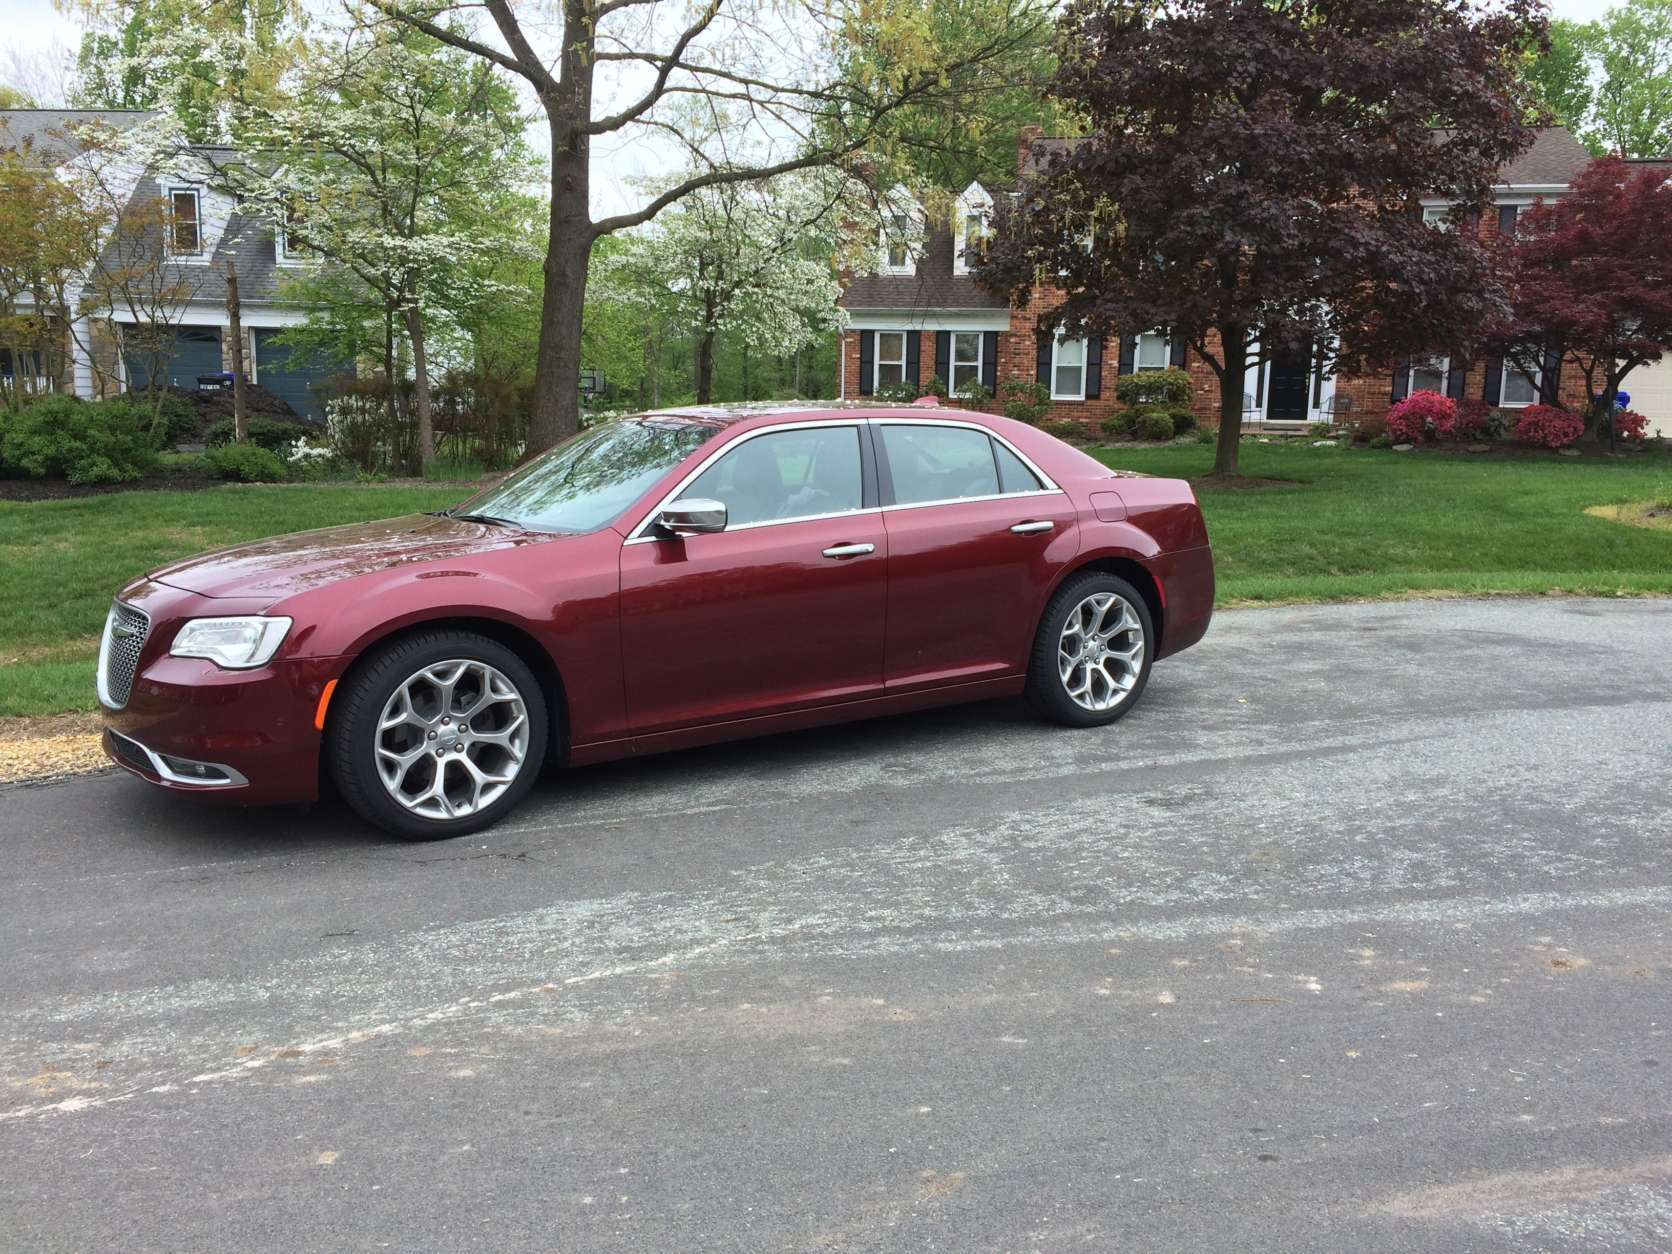 The look is pretty bold for a large sedan that tends to be more conservative in appearance. The Chrysler 300C Platinum differs with a more muscle-car attitude and style. There are large, 20-inch wheels that set this 300C apart from other lower trim models. (WTOP/Mike Parris)